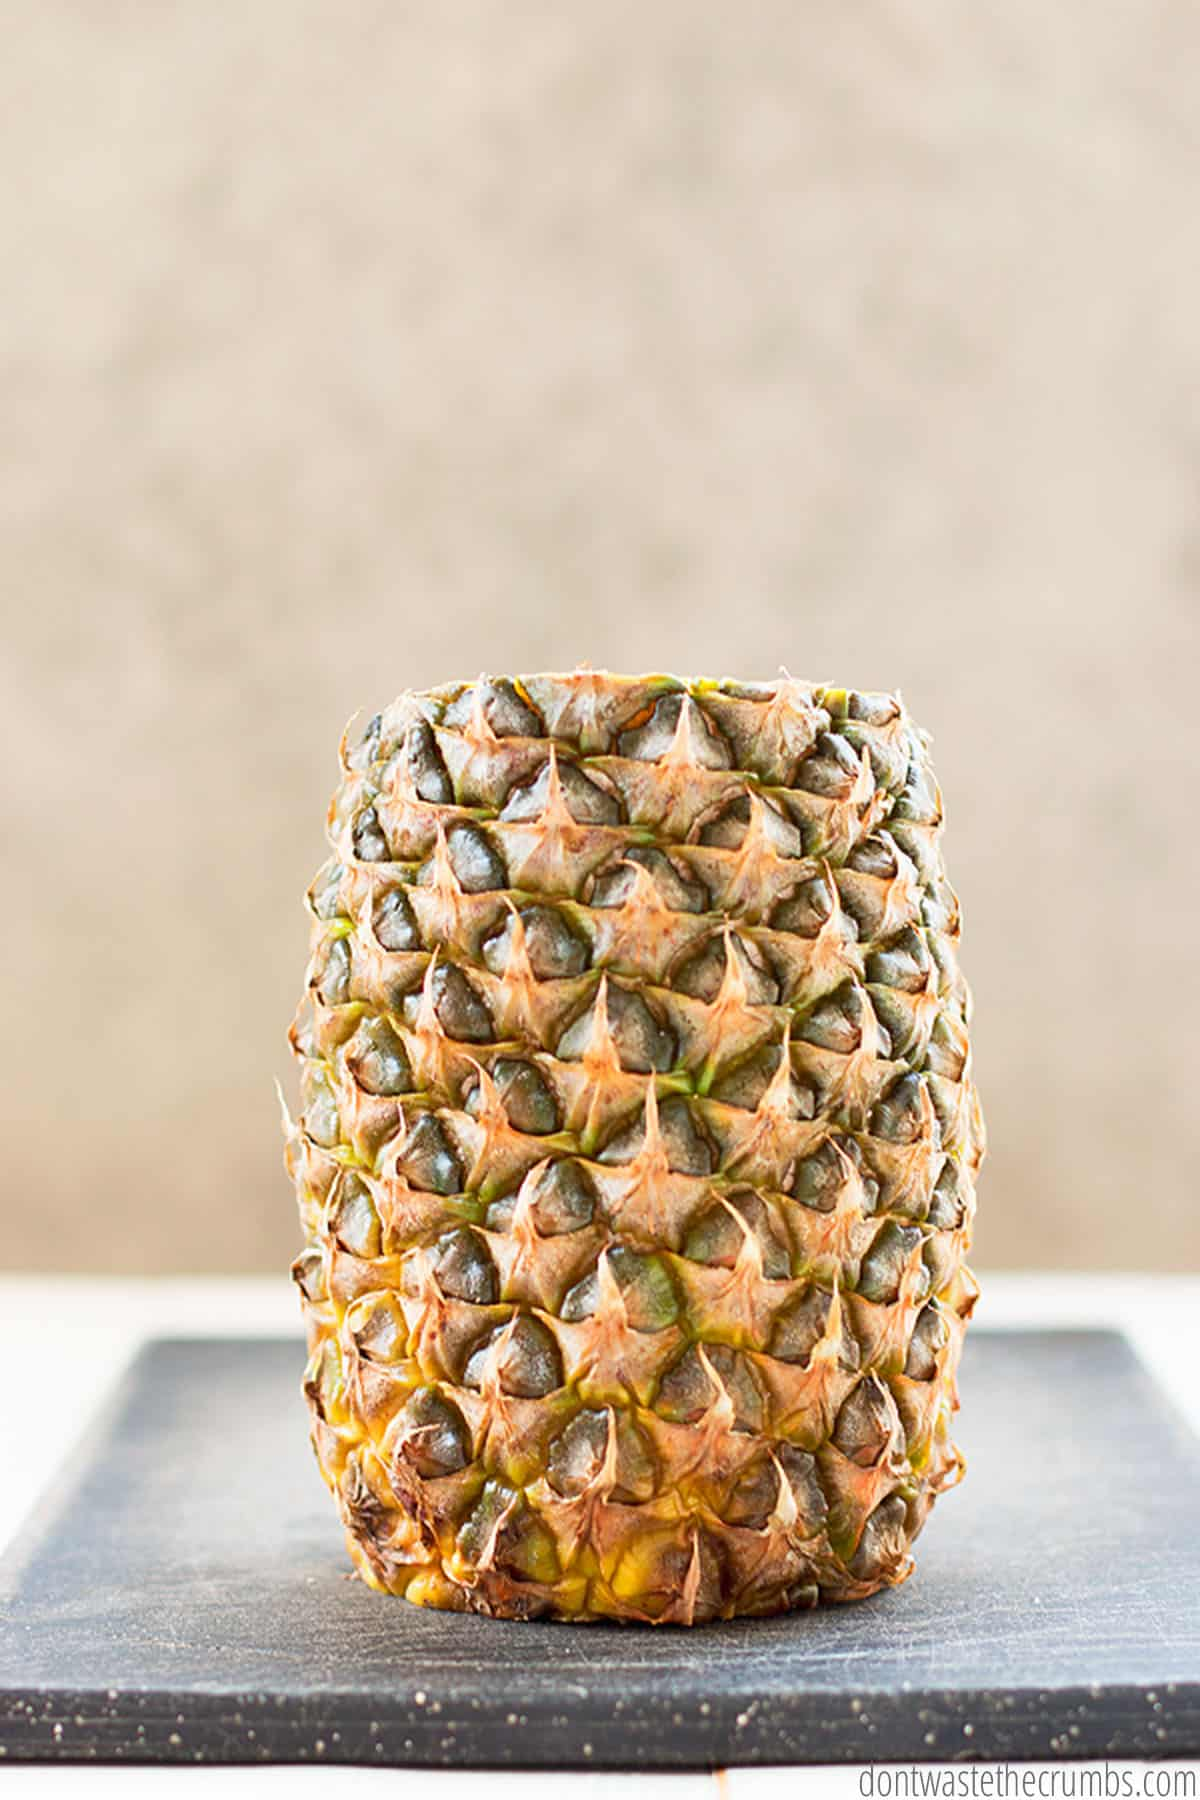 Here is a whole pineapple with the leafy  tops and the bottom cut off.